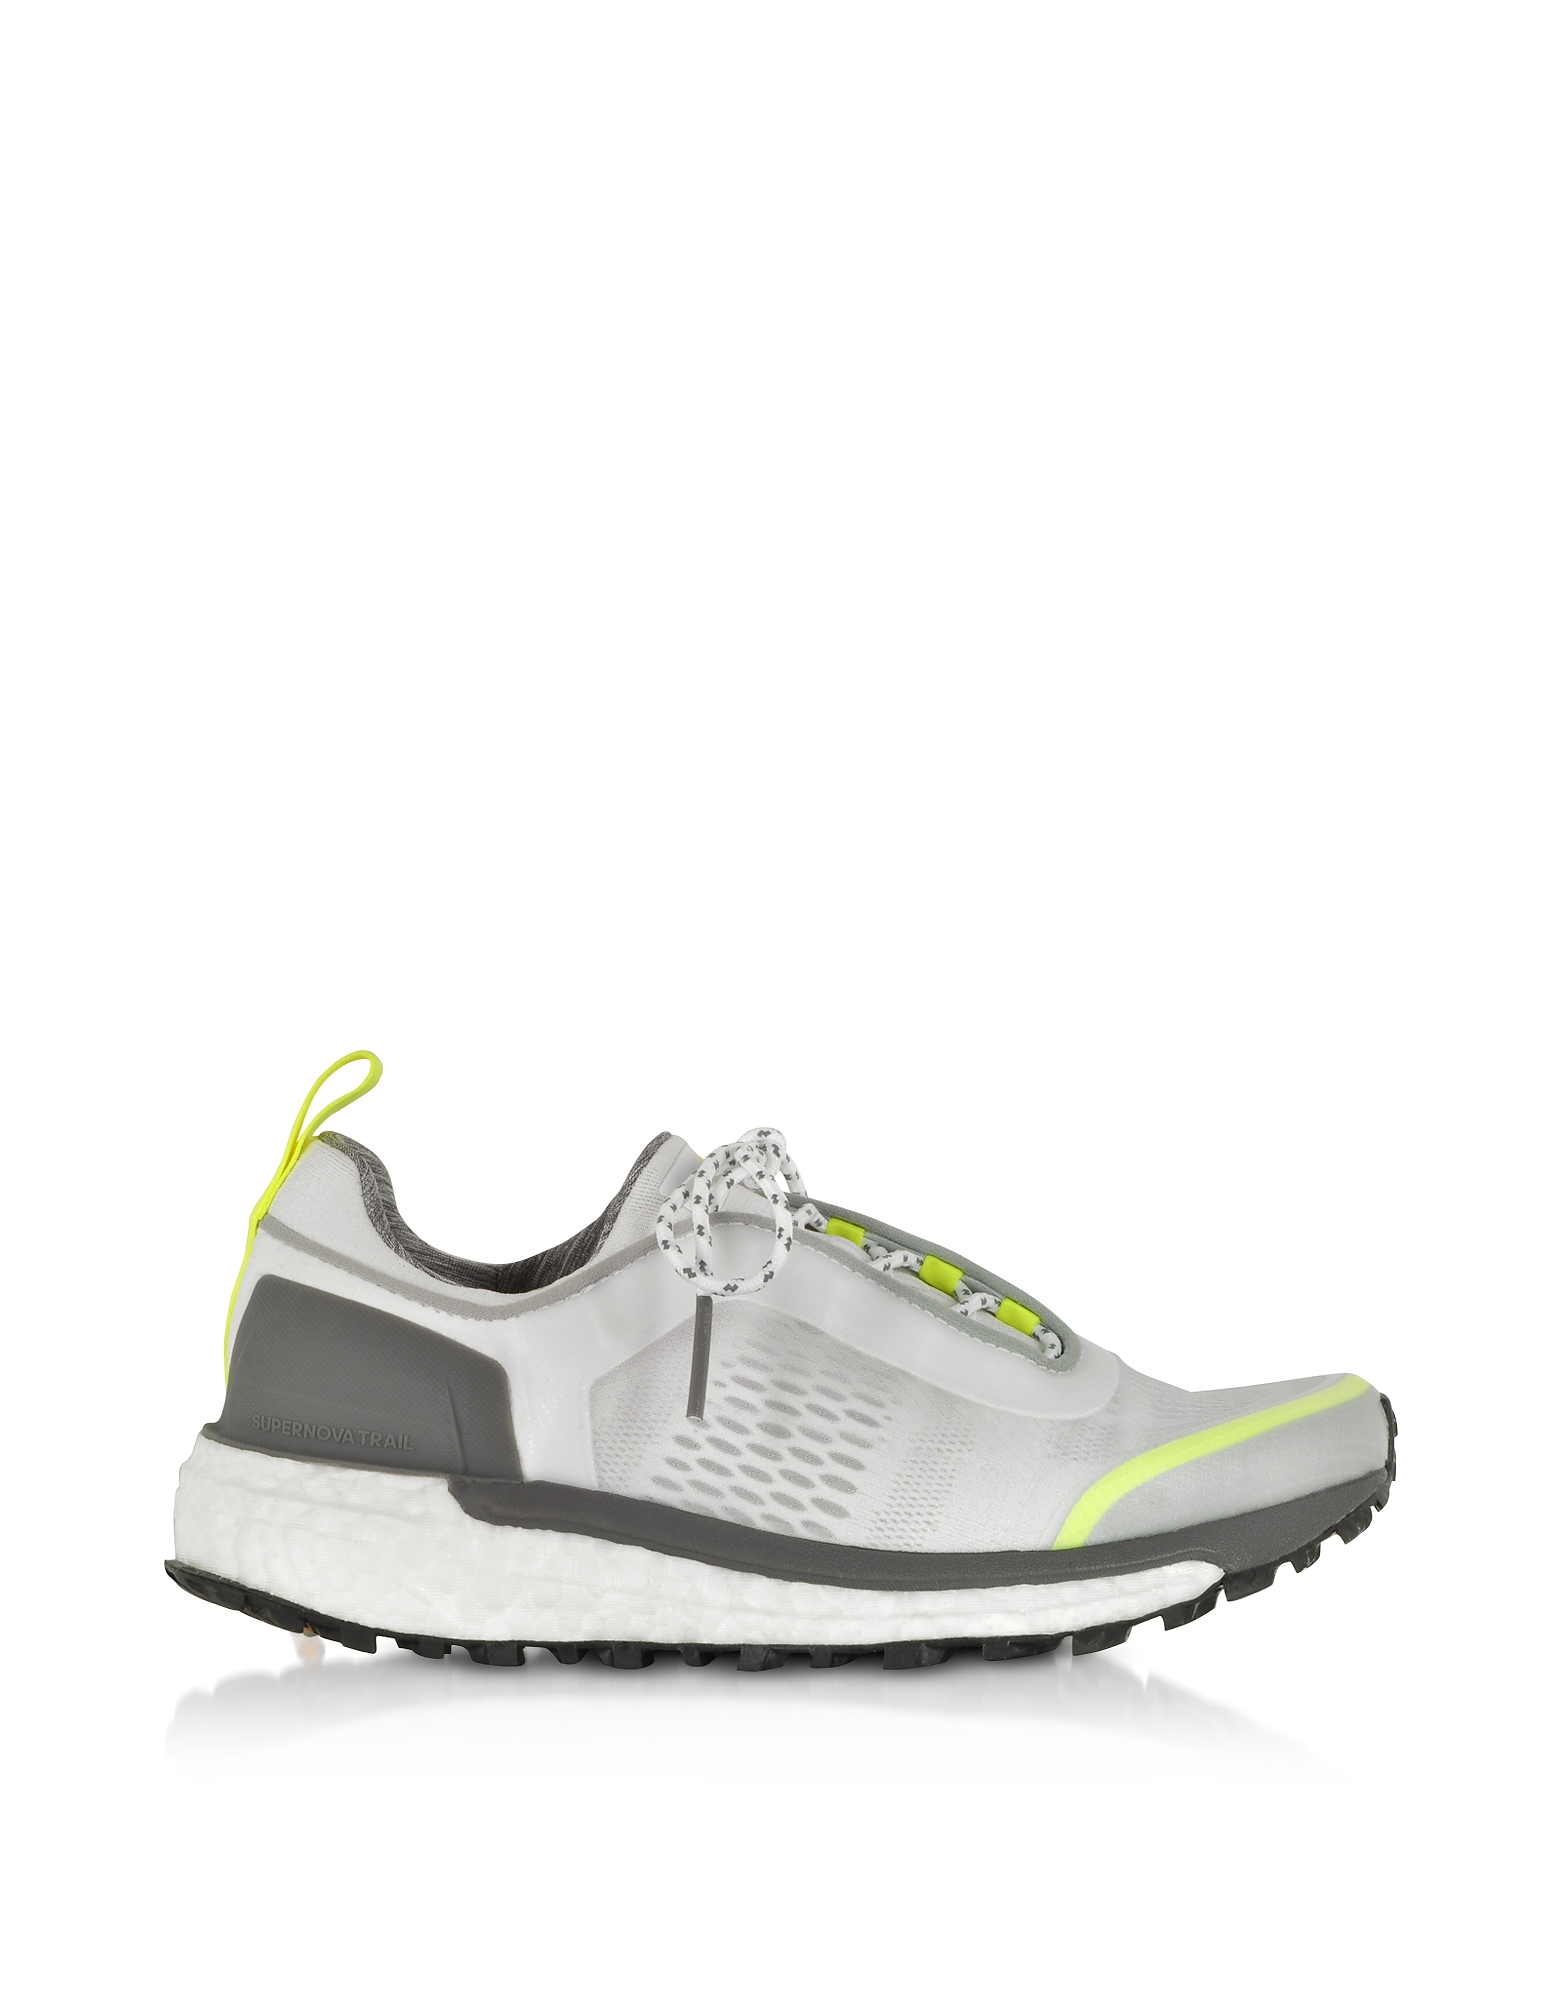 Adidas Stella McCartney Shoes, White Solar Yellow Supernova Trail Sneakers